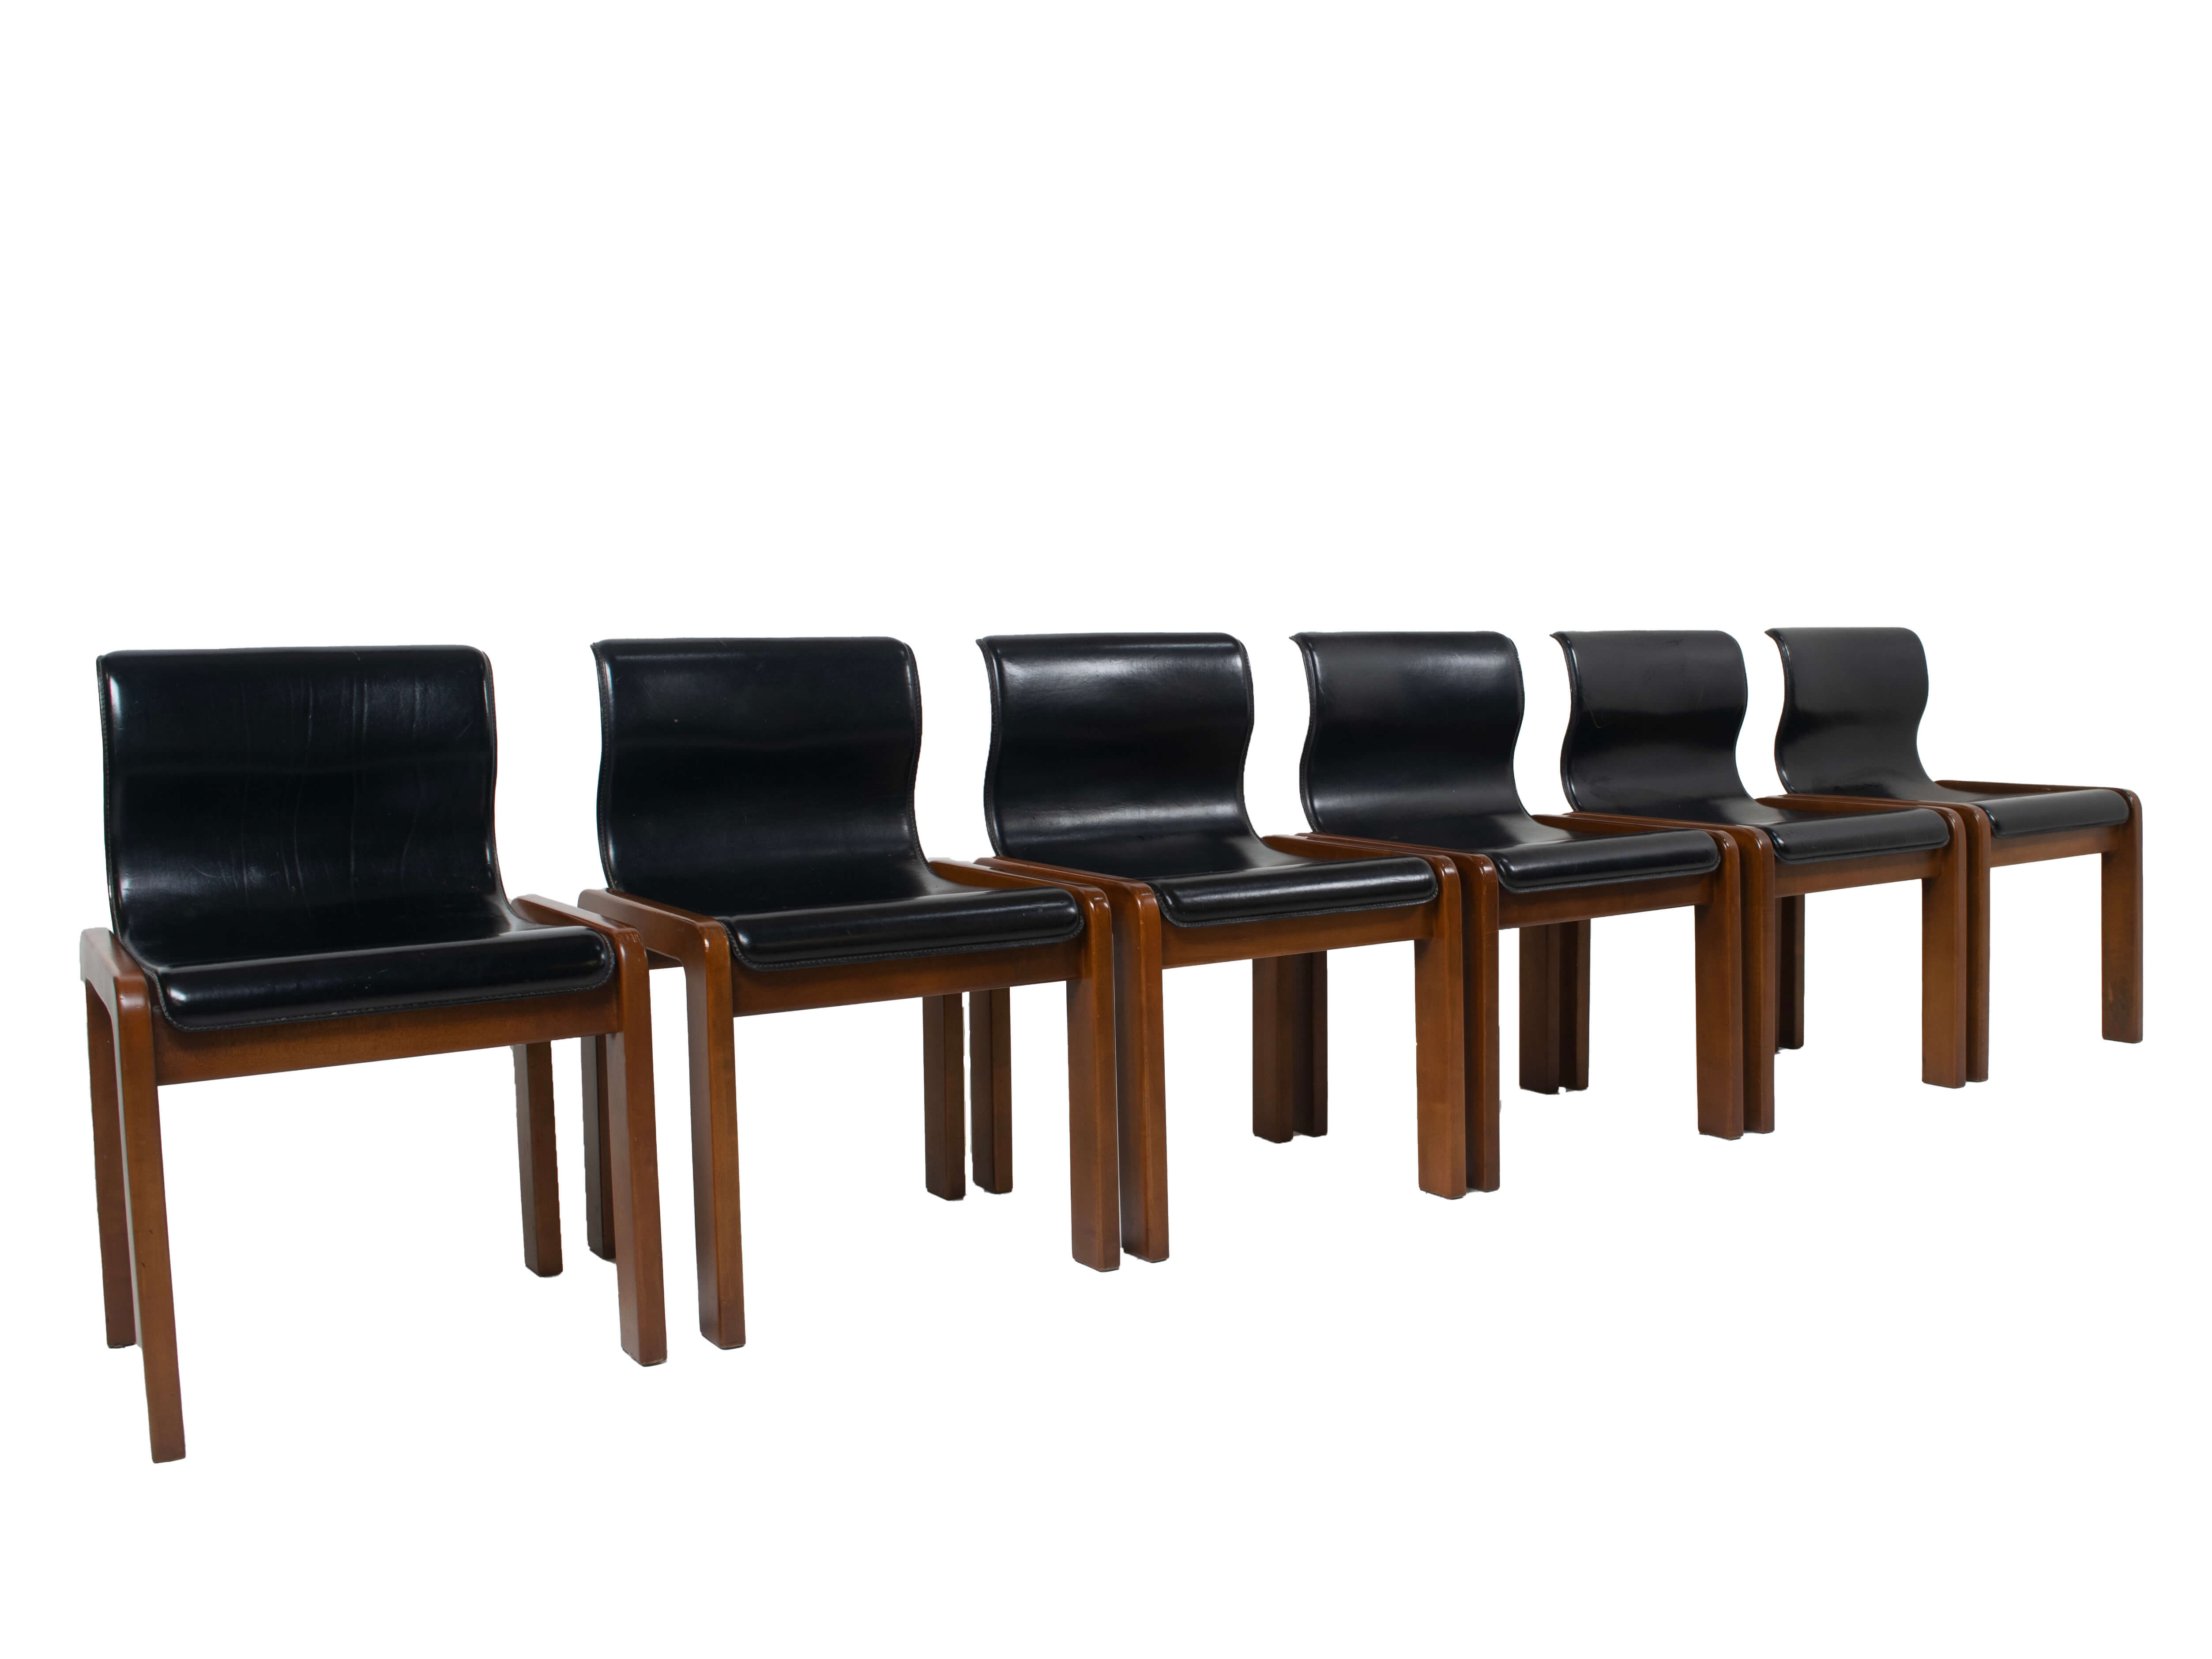 Set of Six Afra & Tobia Scarpa Midcentury Leather and Plywood Dining Chairs, Italy 1966